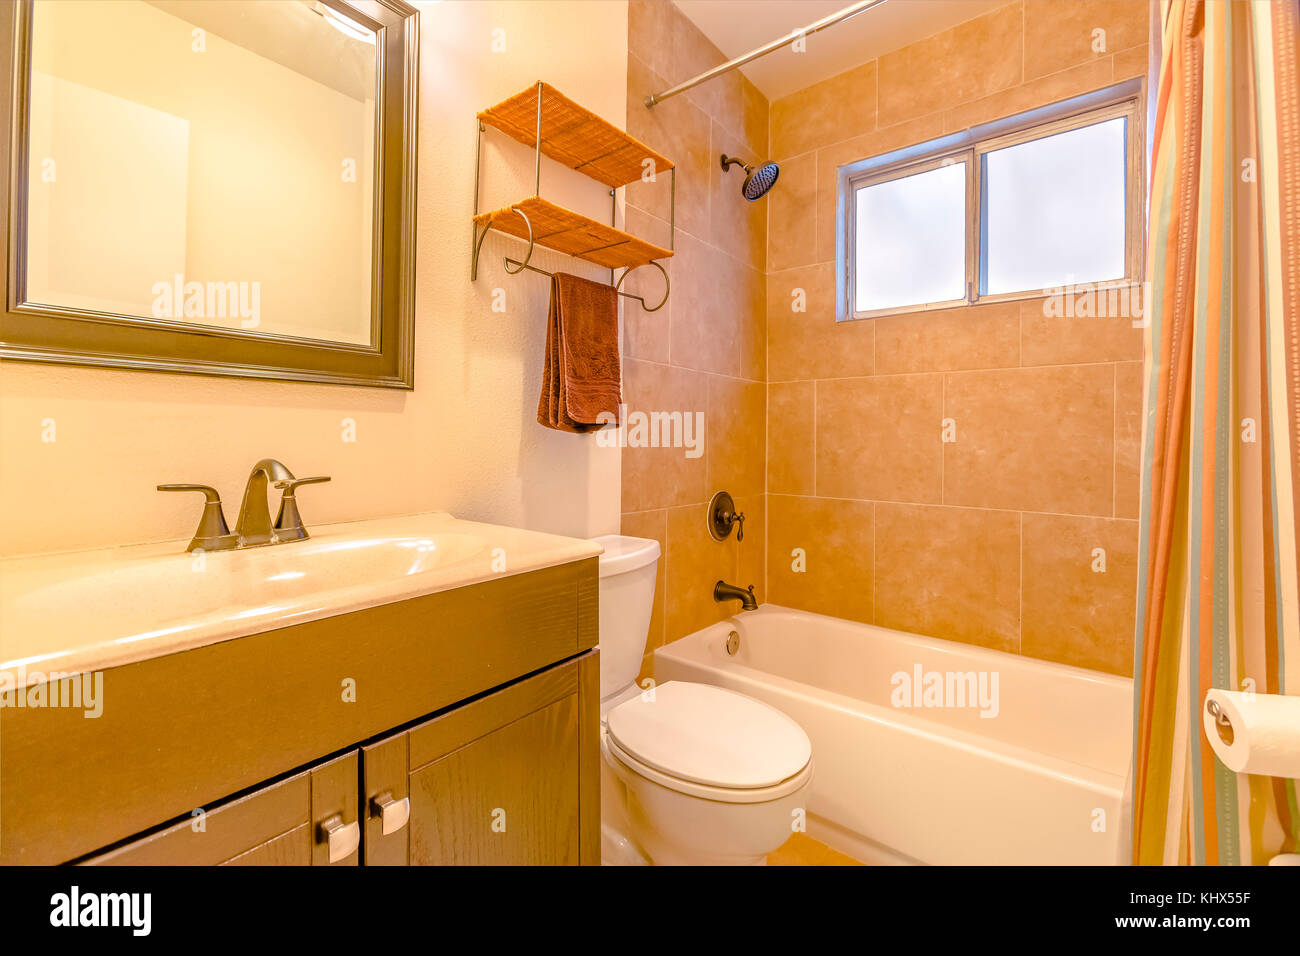 Model homes always show off beautiful bathrooms clean shine Stock ...